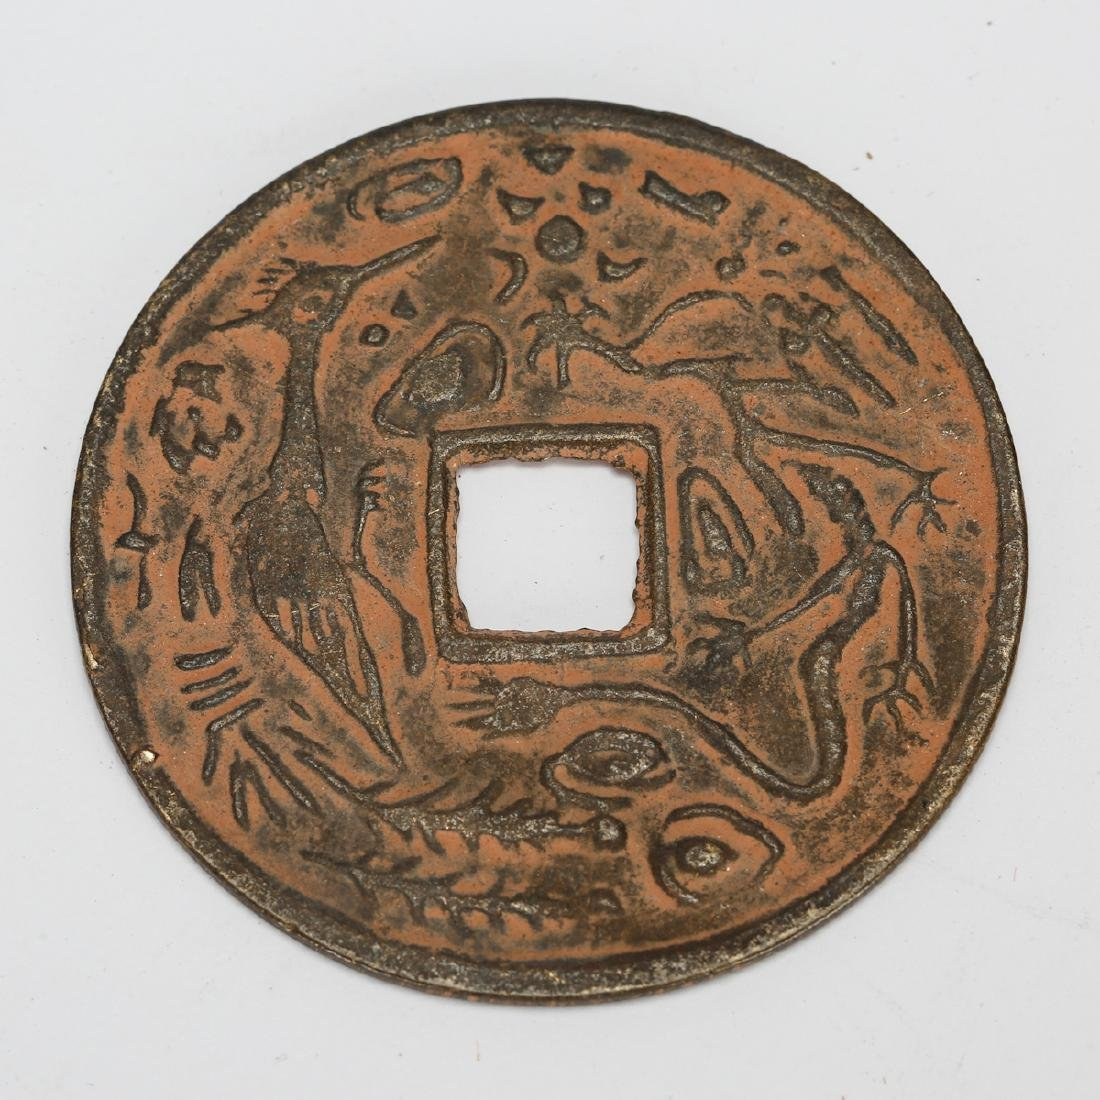 CHINESE BRONZE COINS - 3